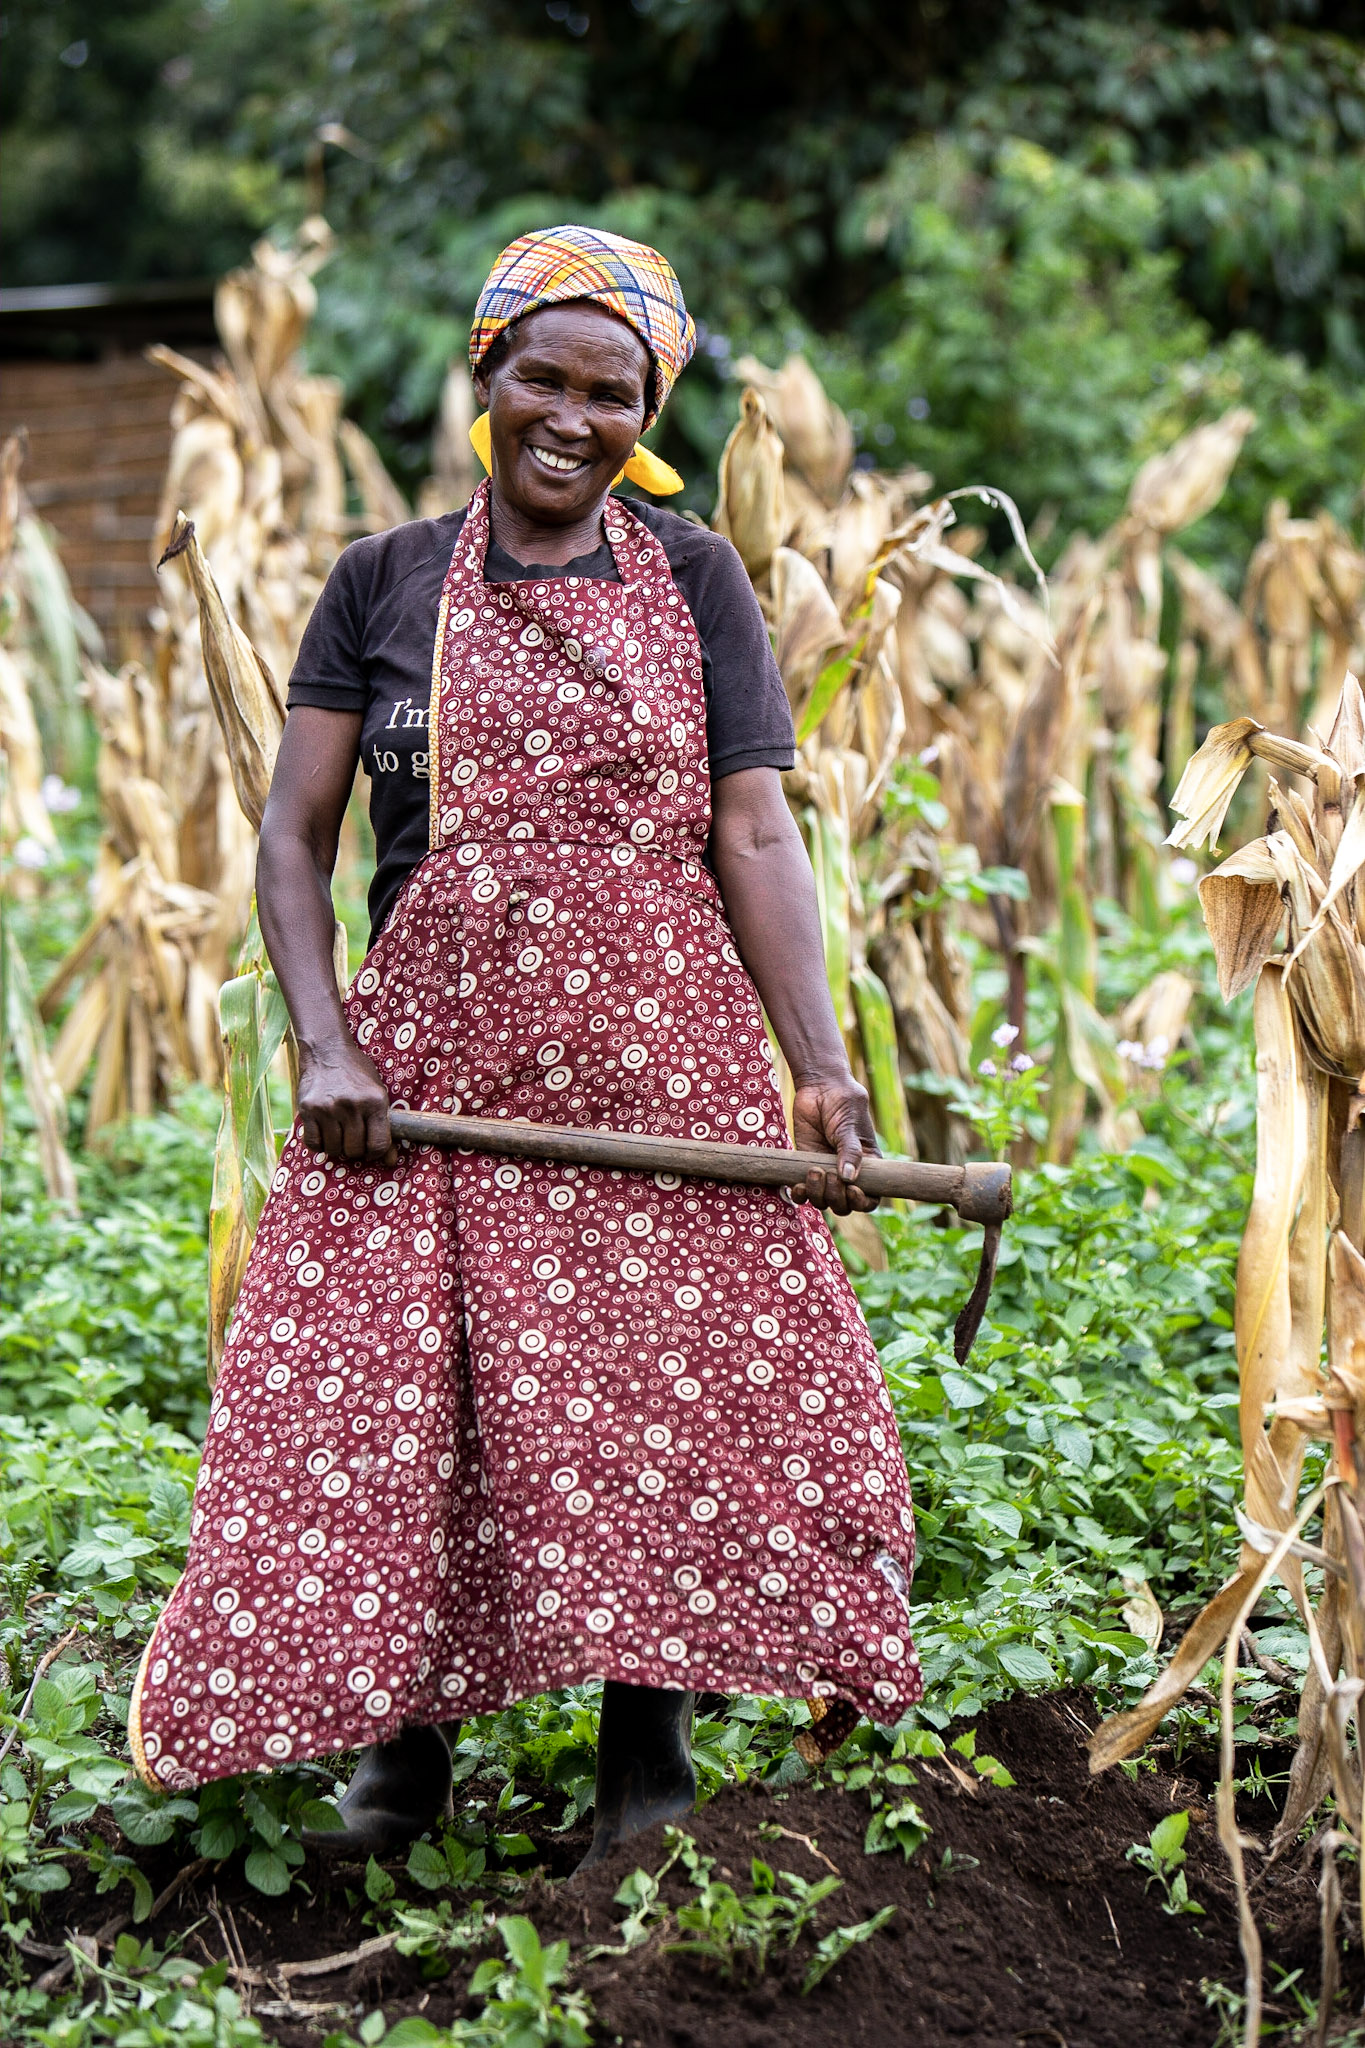 Farming & Five Talents, Kenya